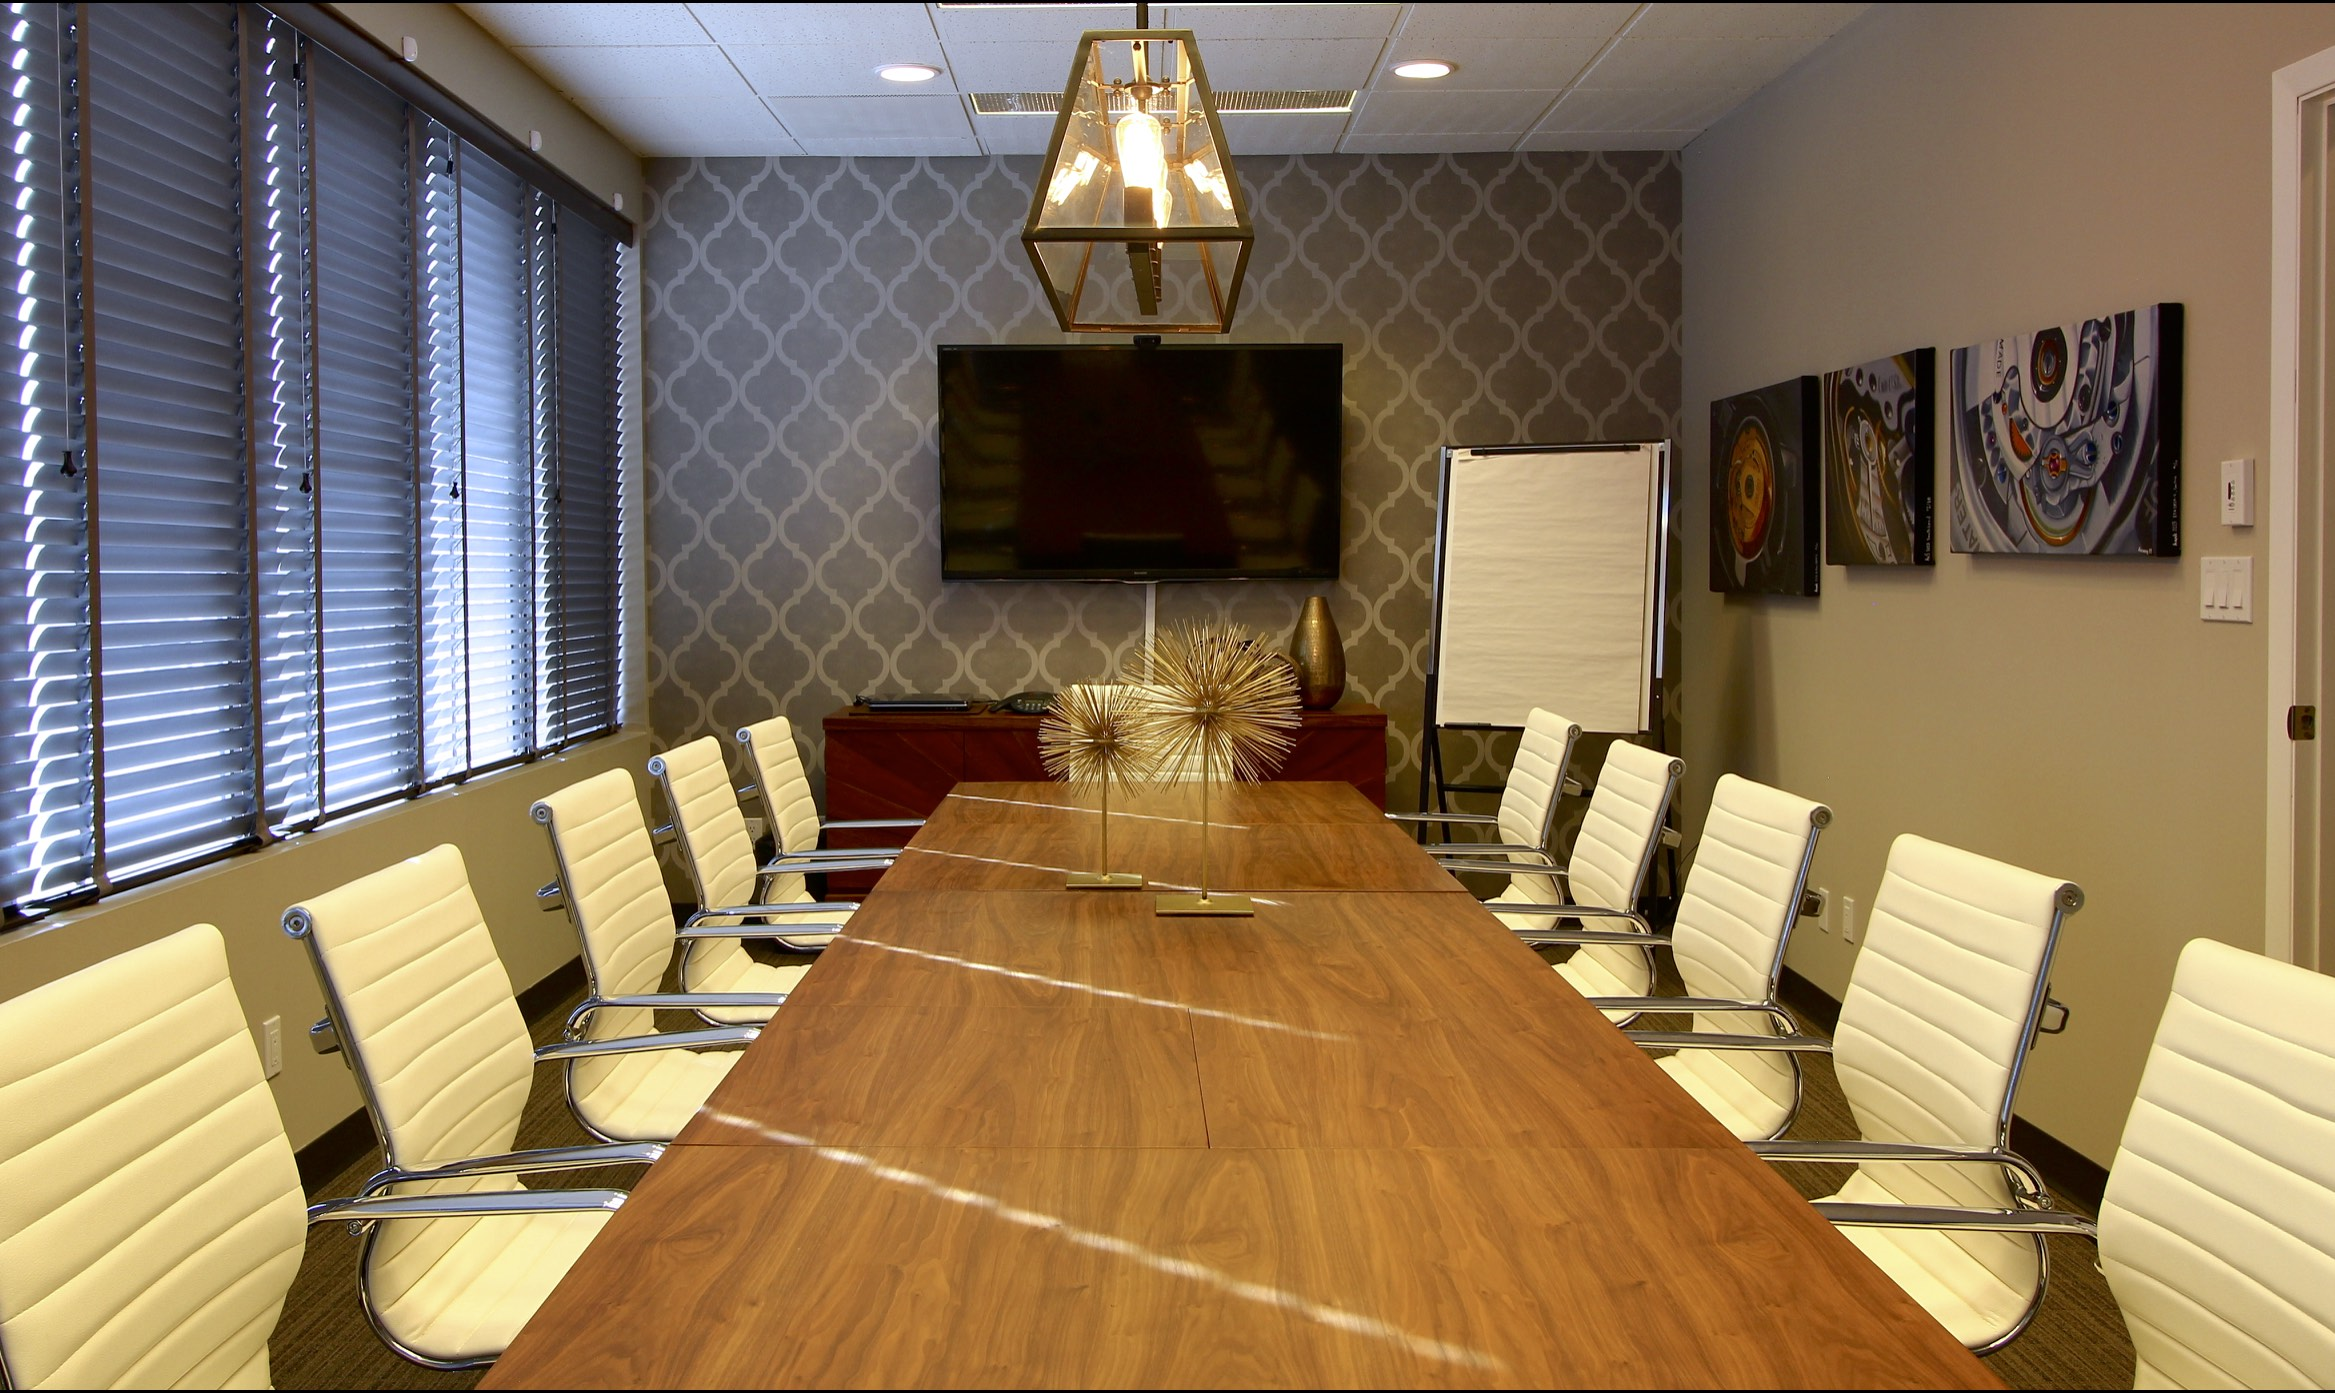 Metric Design Centre, Interior Design, Saskatoon, Commerical Design, Boardroom Table, White Leather Office Chairs, Spike Sculpture, Decor, Decorating, TV, Wallpaper Feature Wall, Art.jpg